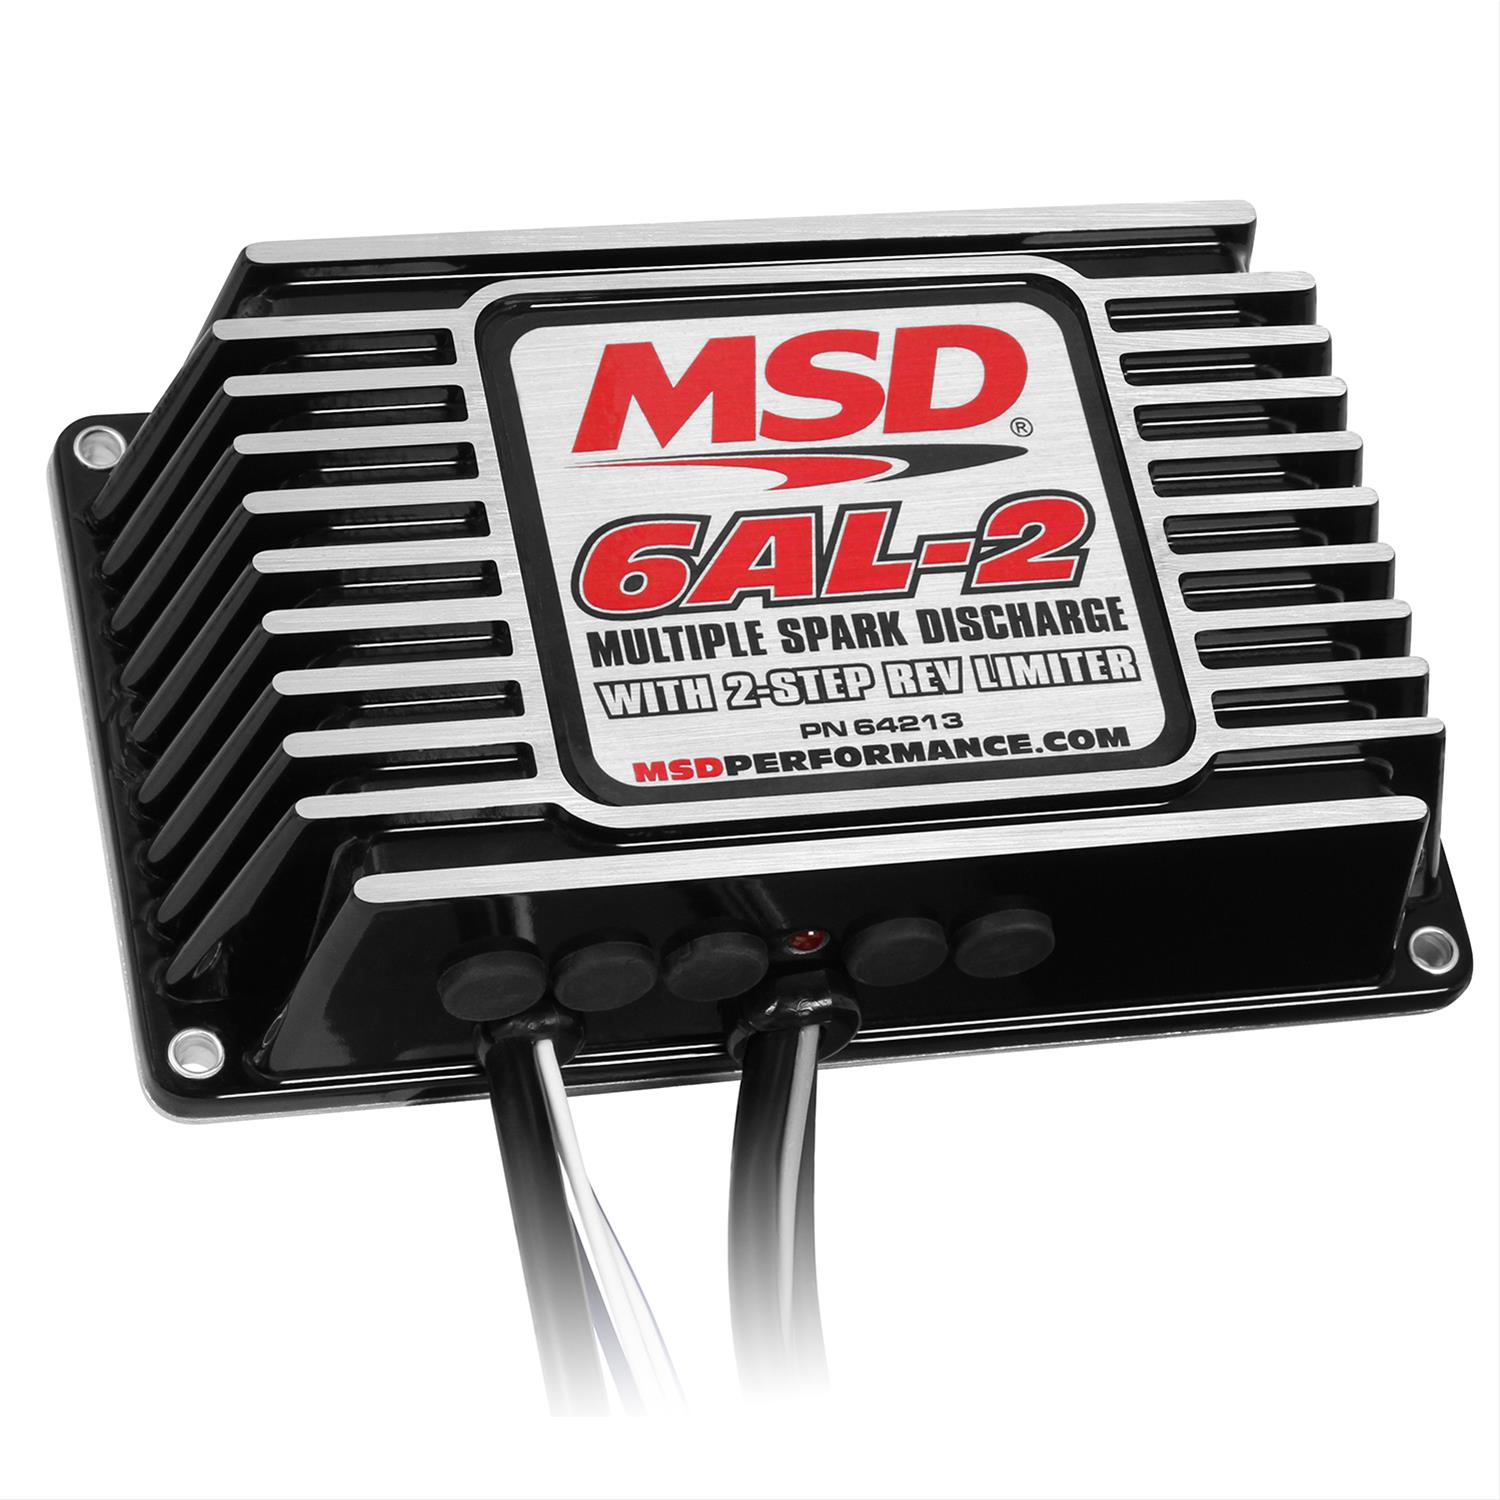 Msd 6al 2 Ignition Boxes 64213 Free Shipping On Orders Over 49 At Box Combination Wiring Diagram Summit Racing